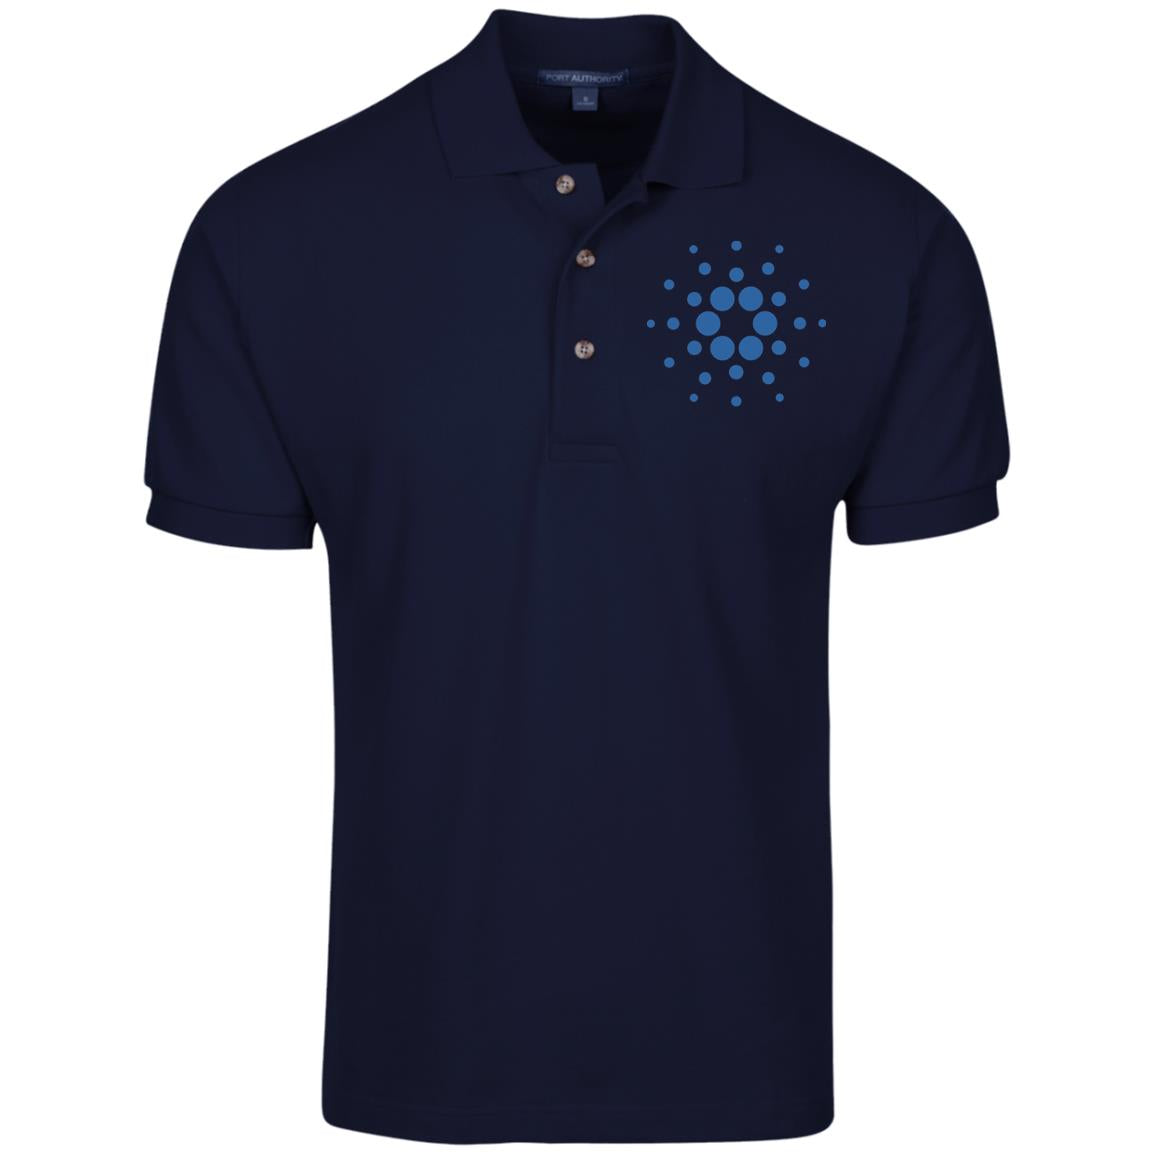 Cardano Cotton Pique Knit Polo